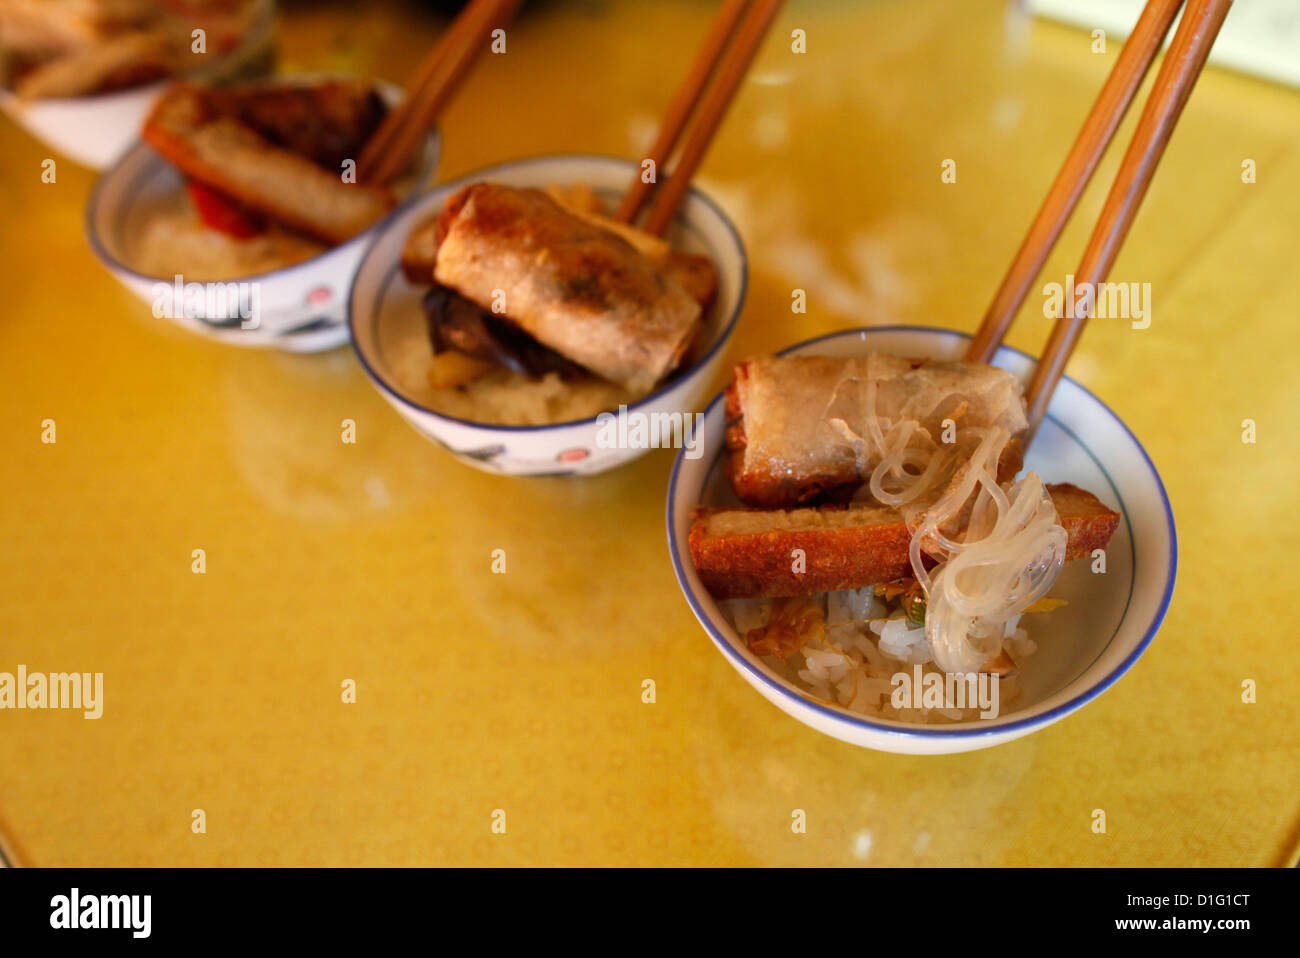 Vegetarian offerings, Tu An Buddhist temple, Saint-Pierre-en-Faucigny, Haute Savoie, France, Europe - Stock Image